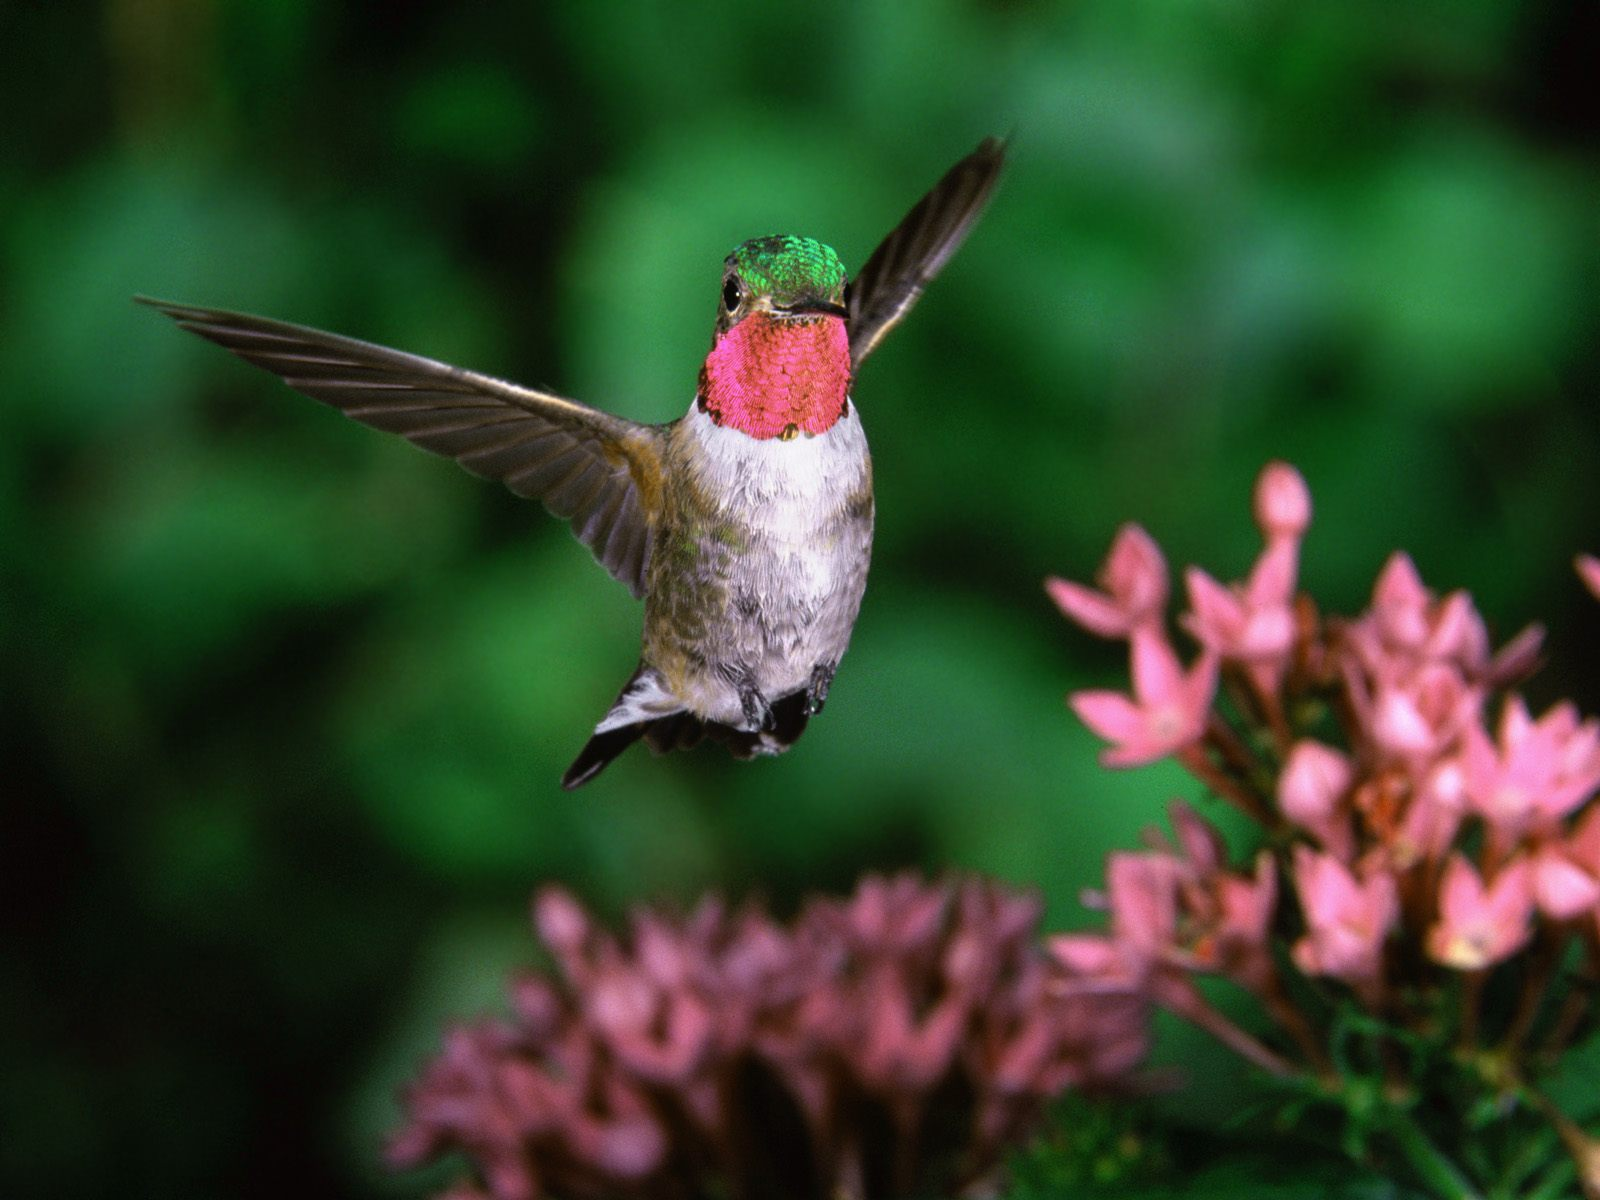 Broadtail Humming Bird867263101 - Broadtail Humming Bird - Wolf, Humming, Broadtail, Bird